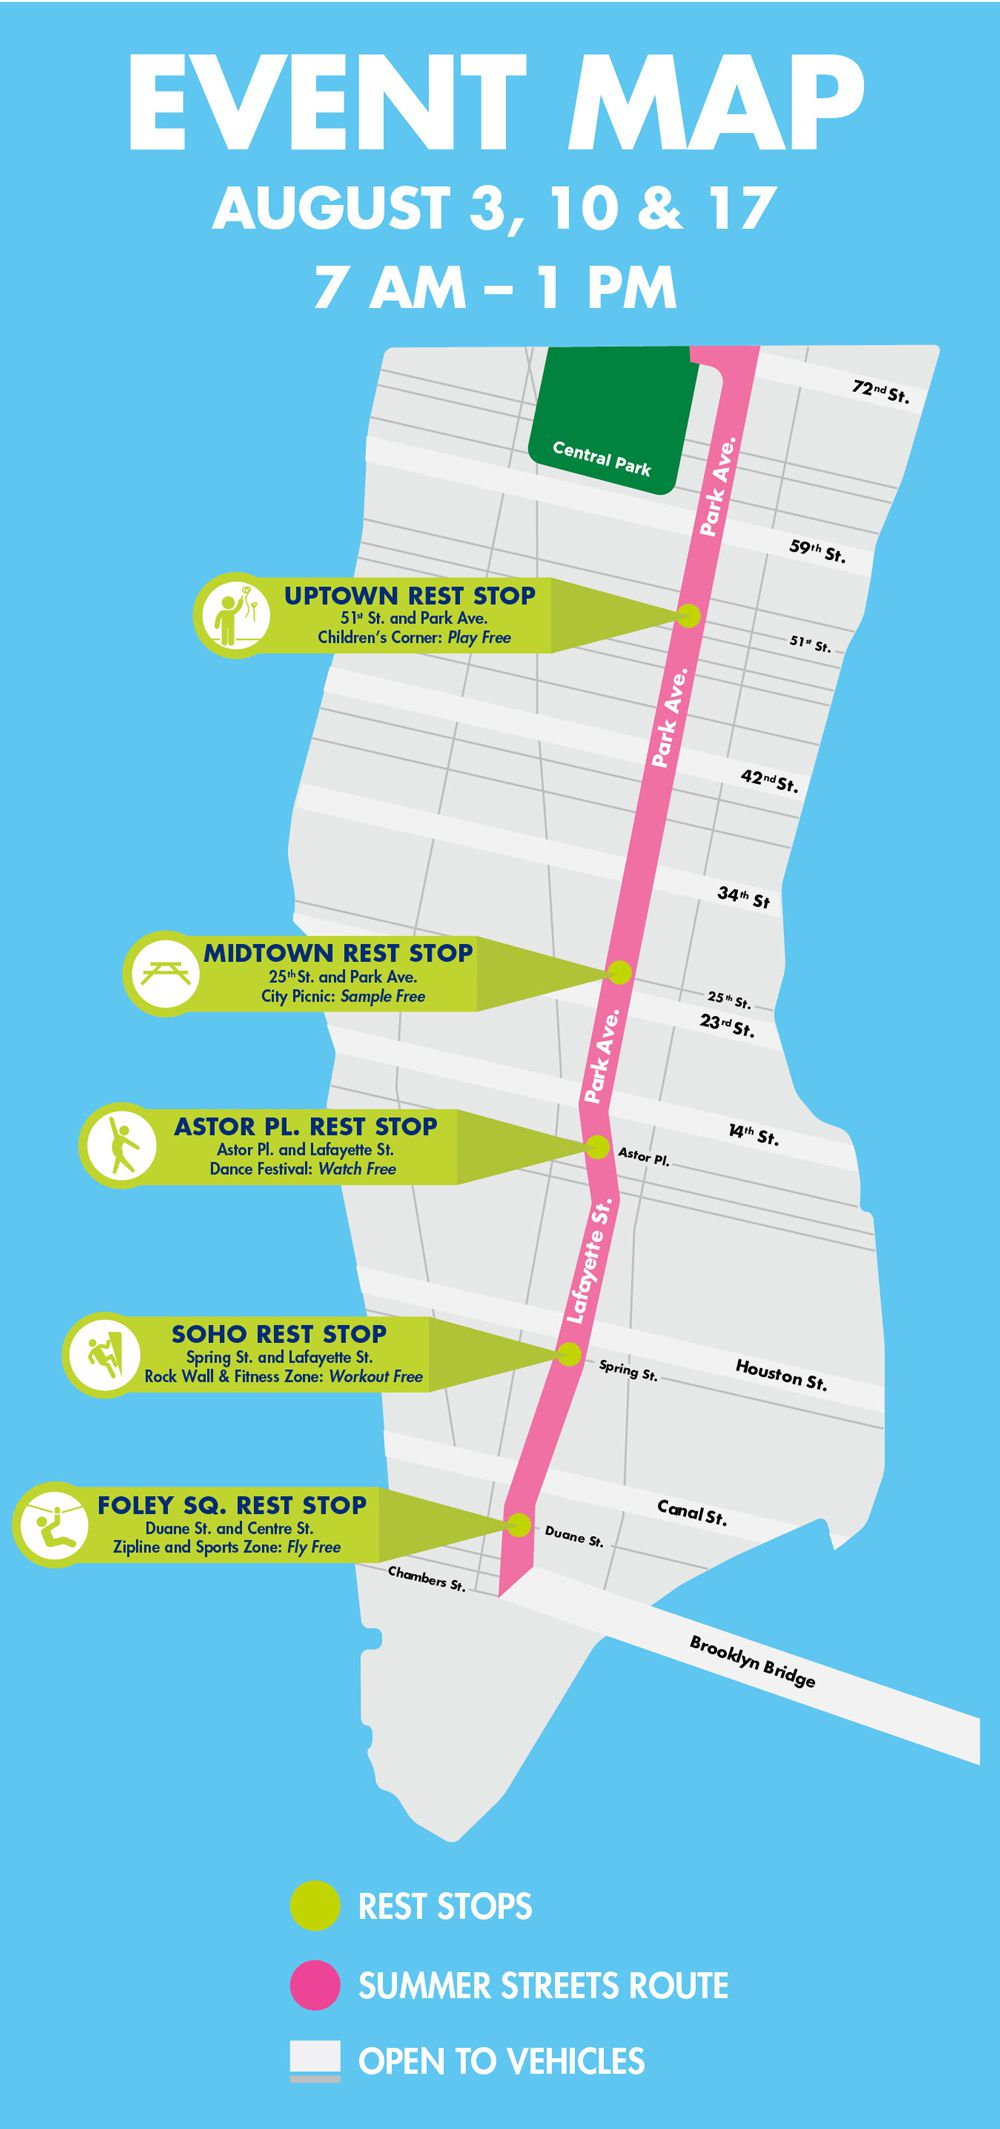 A map of the route for Summer Streets, showing street closures and rest stops from the Brooklyn Bridge to the Upper East Side.